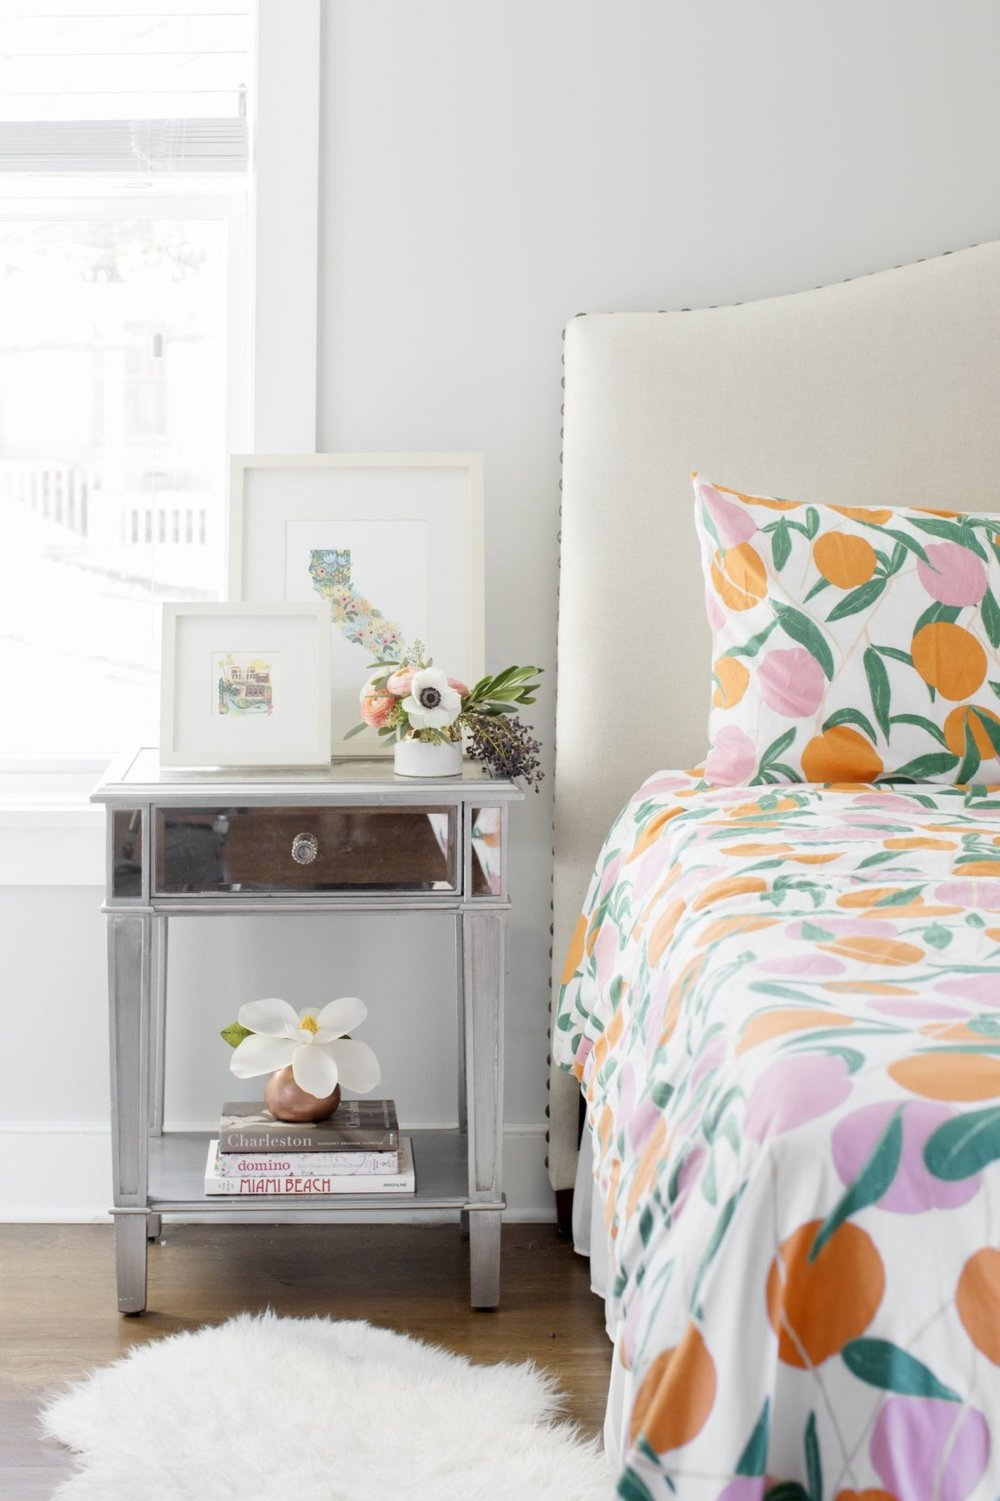 colorful bedspread Florida themed decor